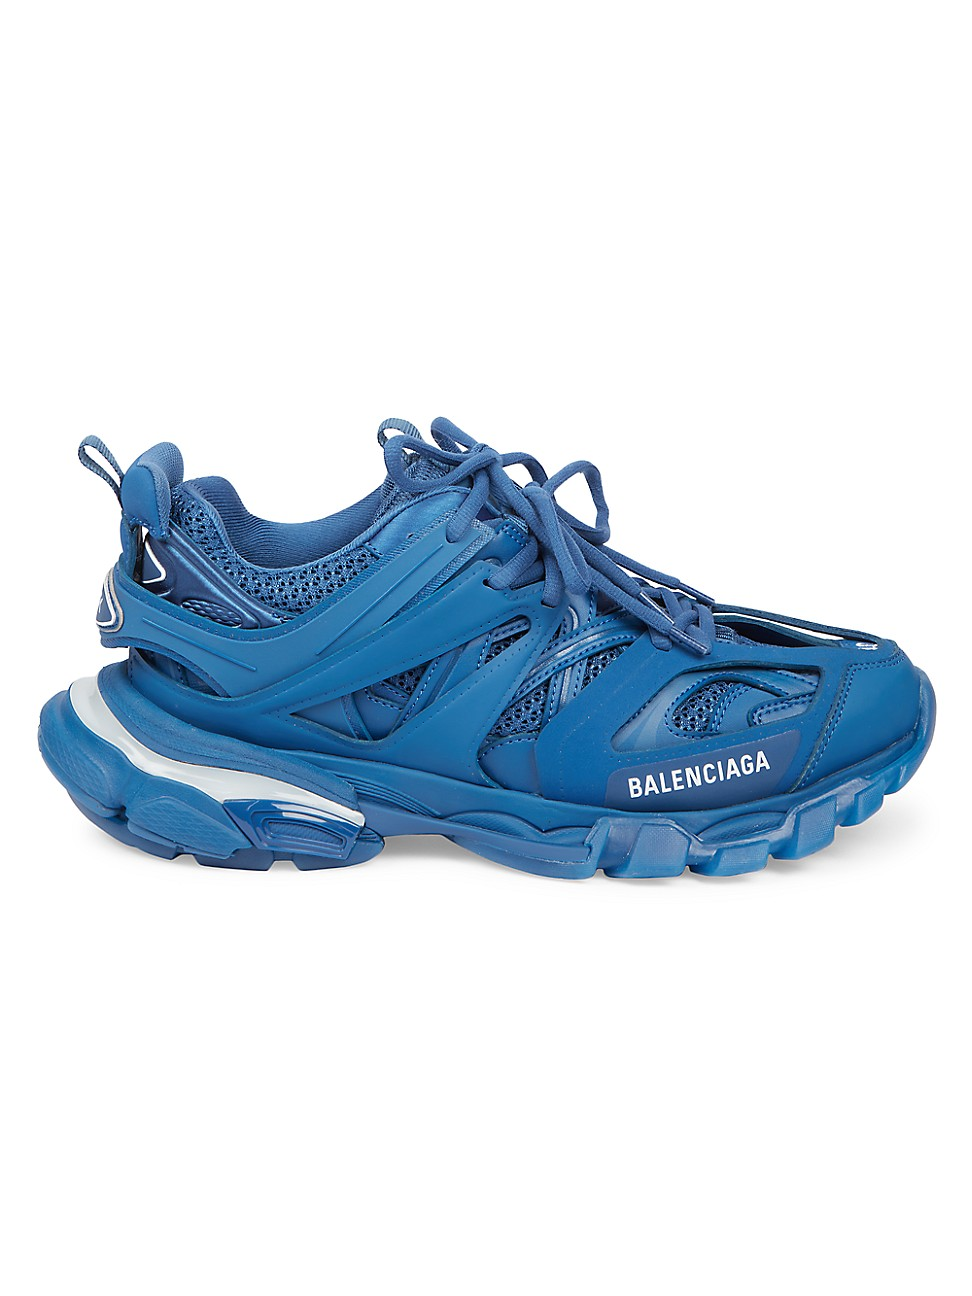 Balenciaga MEN'S TRACK SNEAKERS